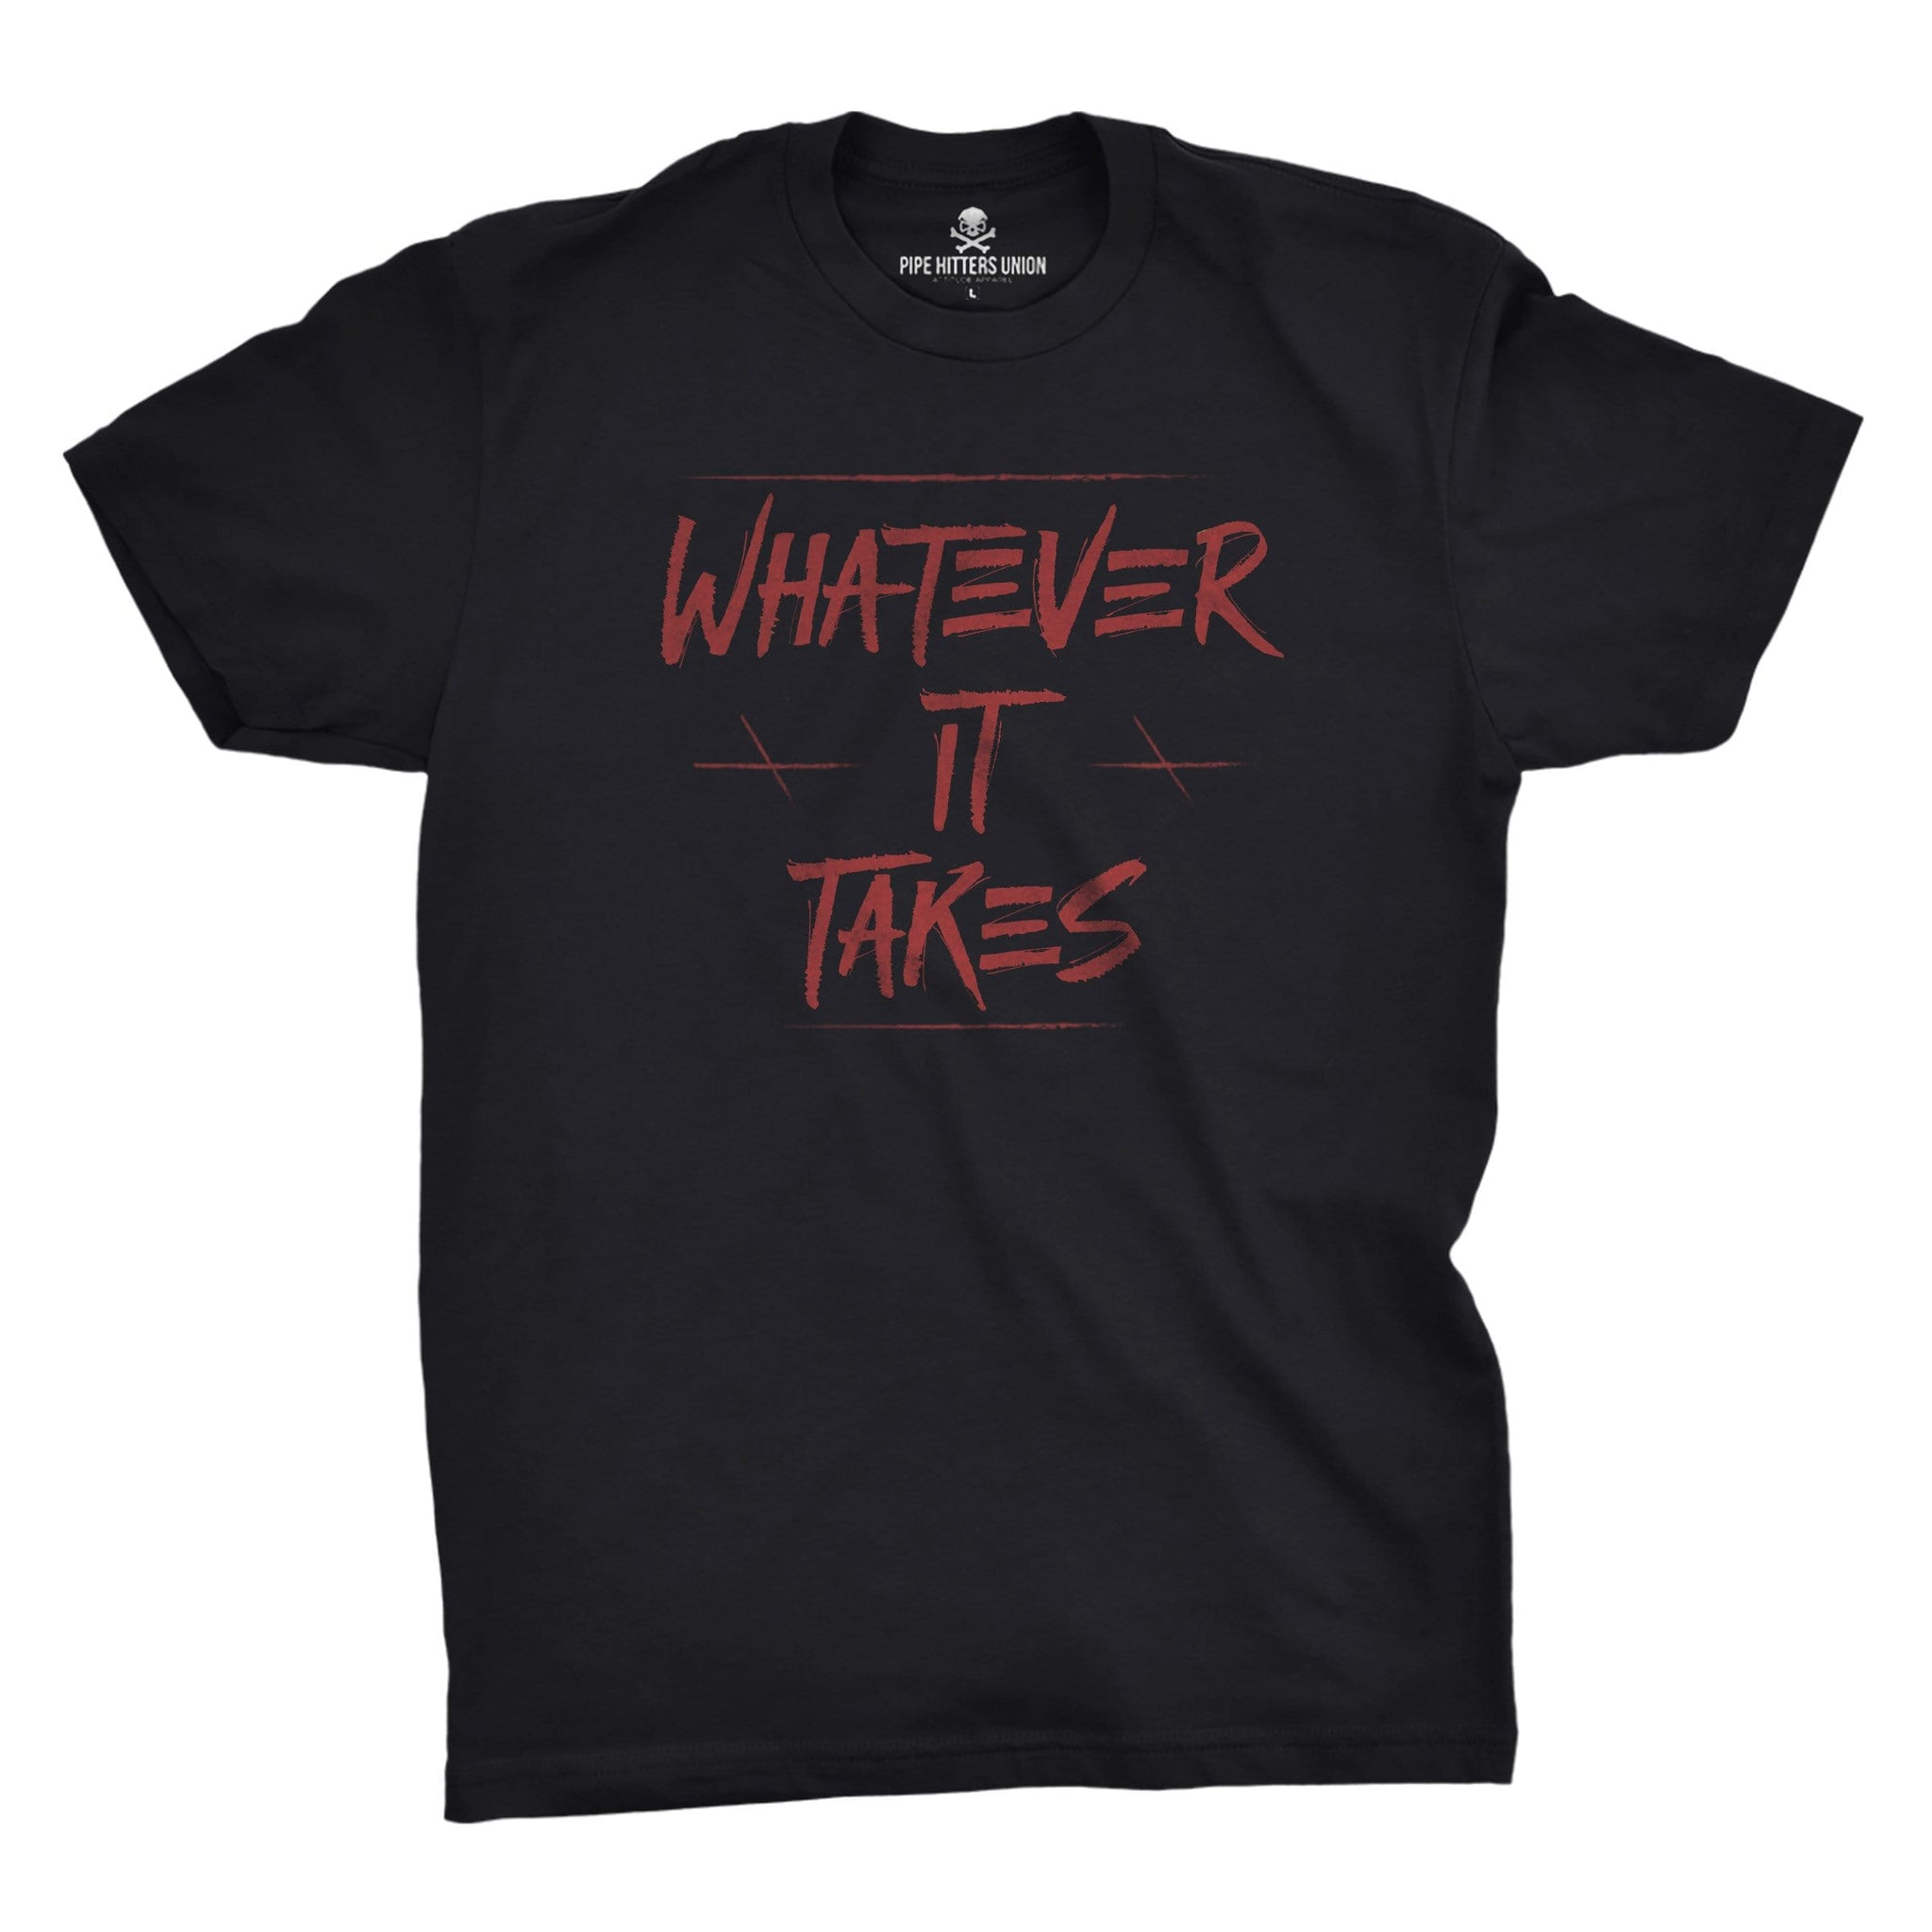 Whatever It Takes - Pipe Hitters Union